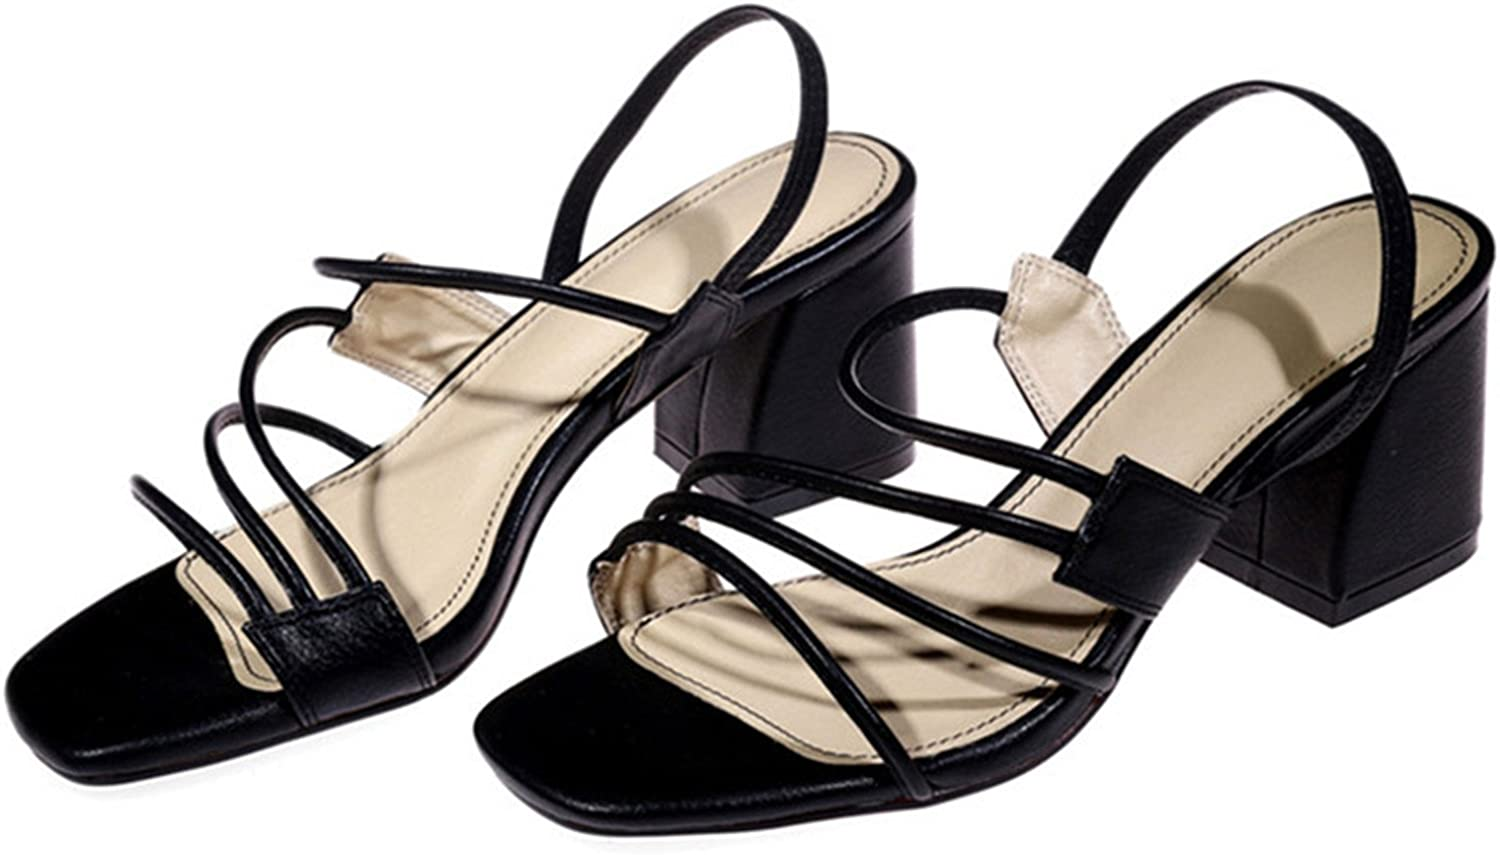 Aworth Popular shoes in Summer High Heels Sandals Women shoes Pu+Genuine Leather shoes Fashion Party